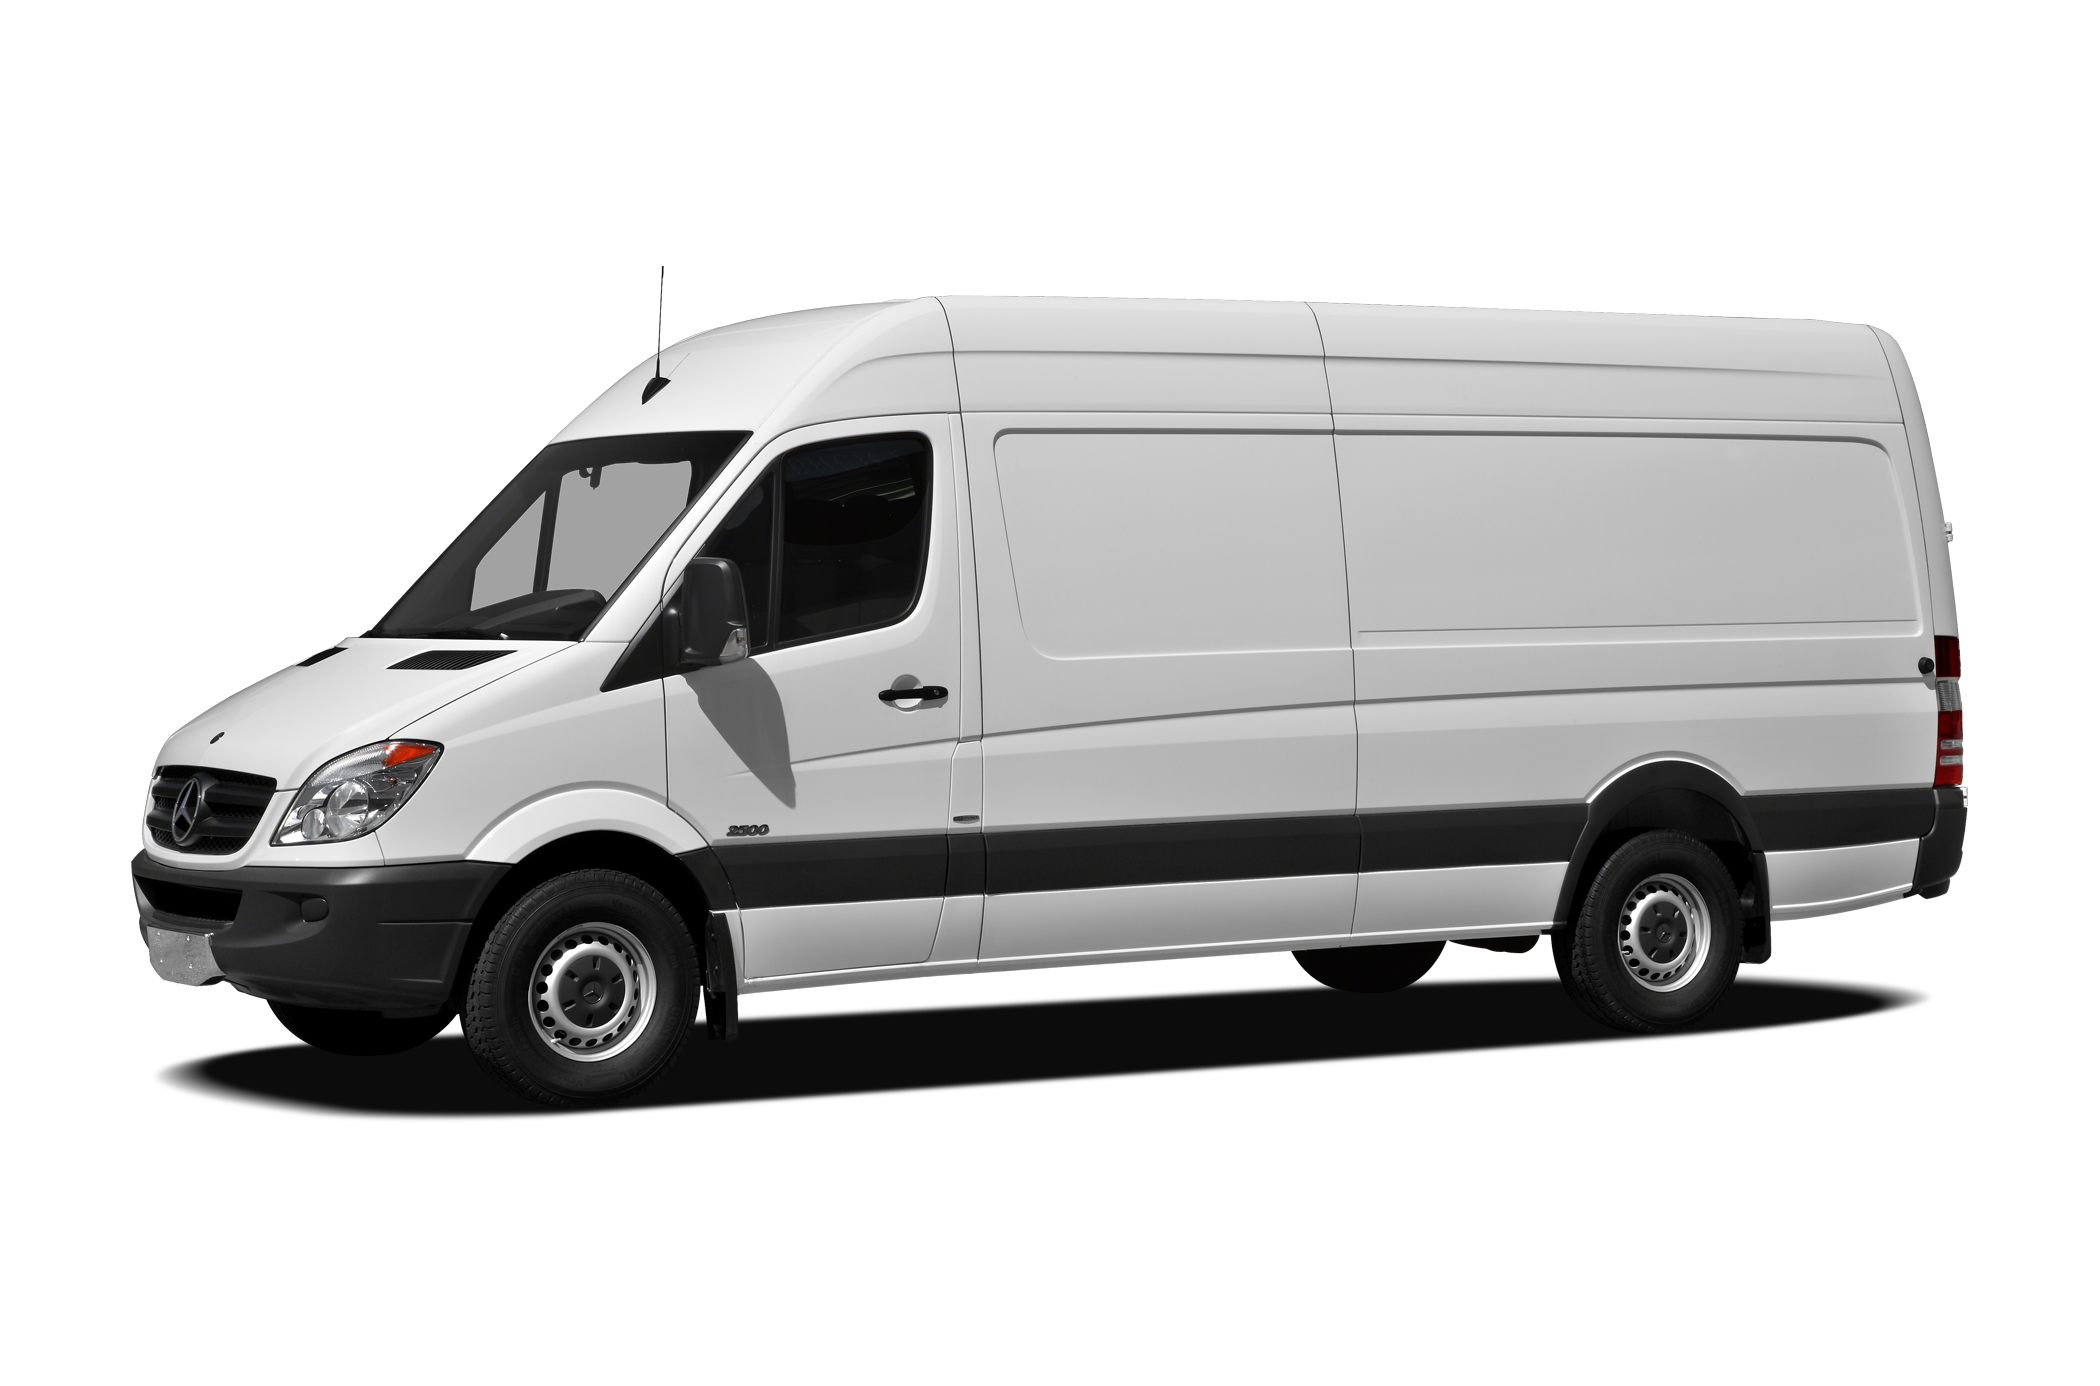 2011 Mercedes-Benz Sprinter 2500 High Roof Extended Cab Pickup for sale in Woodbridge for $24,995 with 108,811 miles